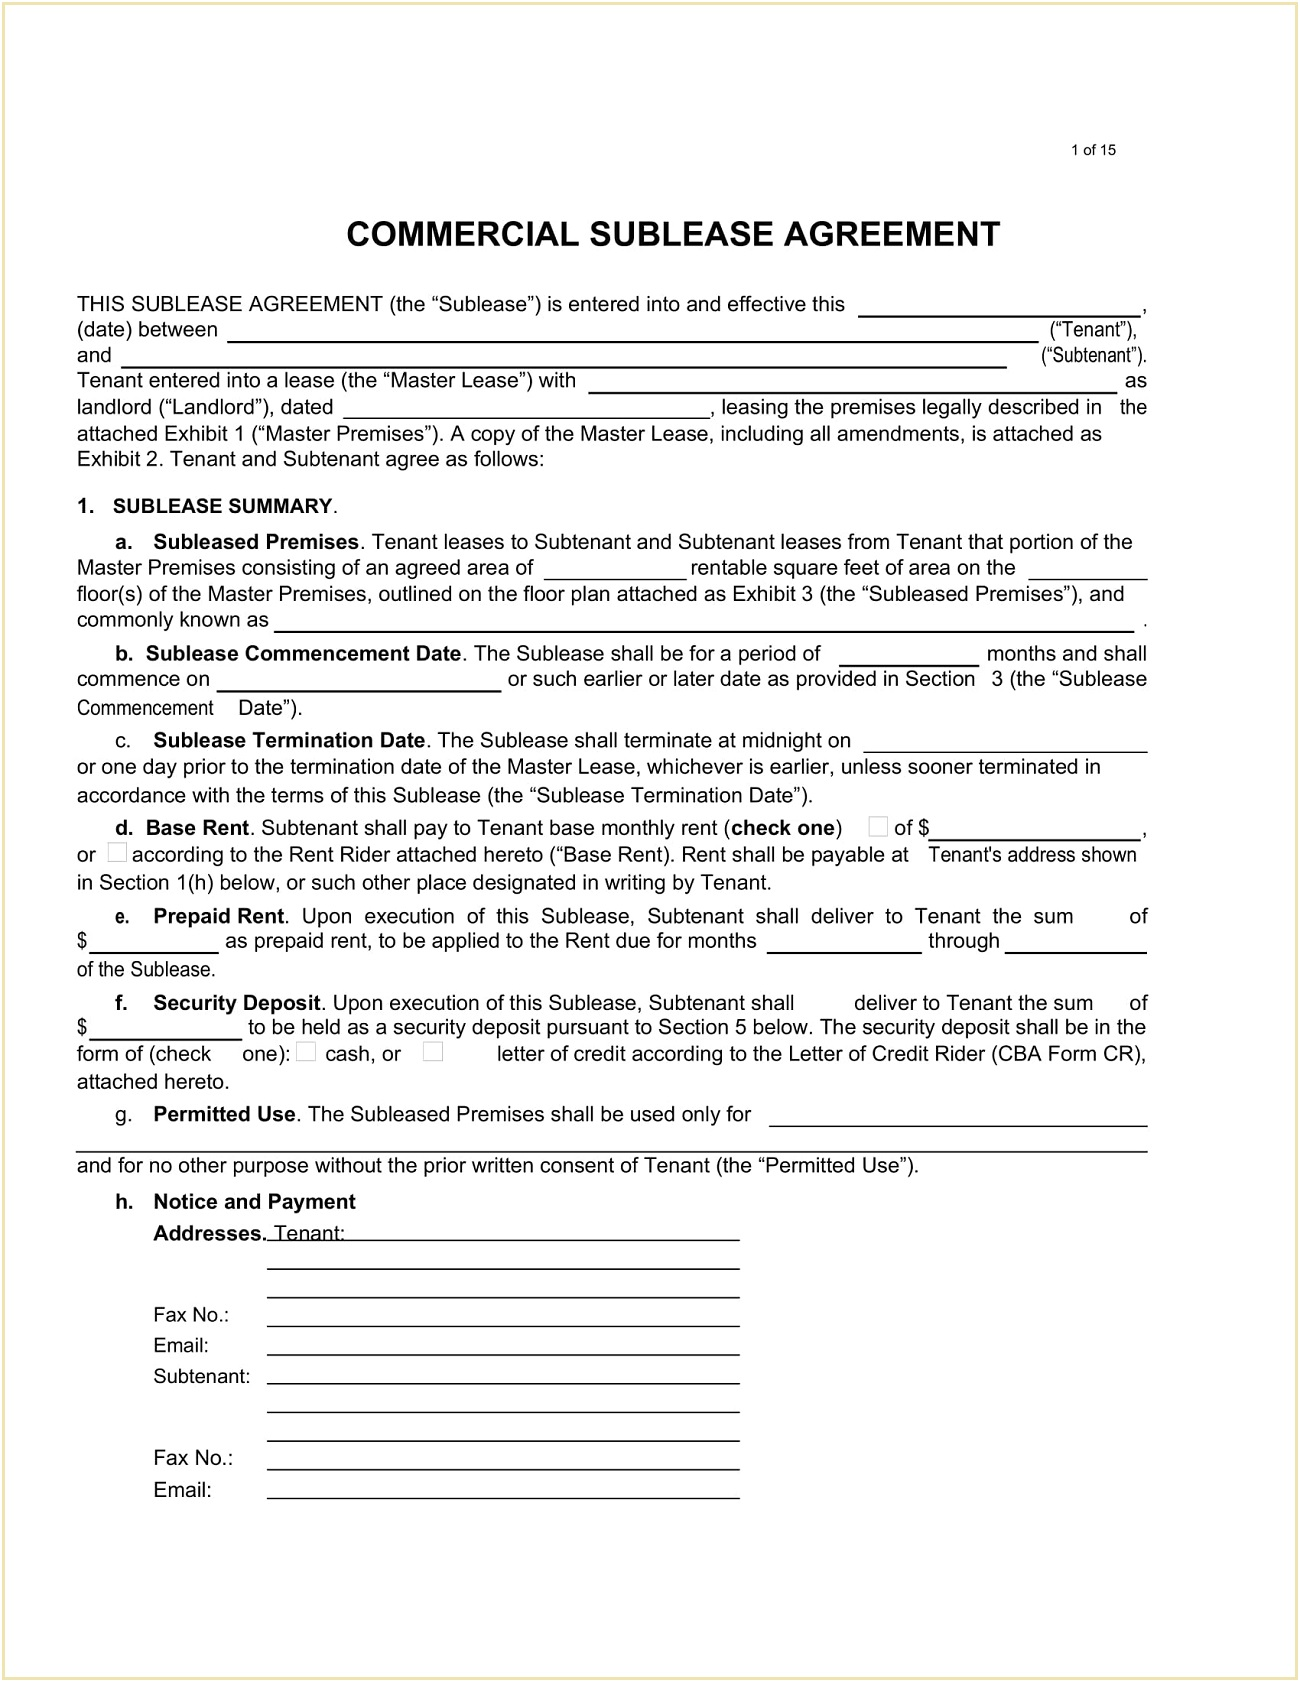 Commercial Sublease Agreement Form Word